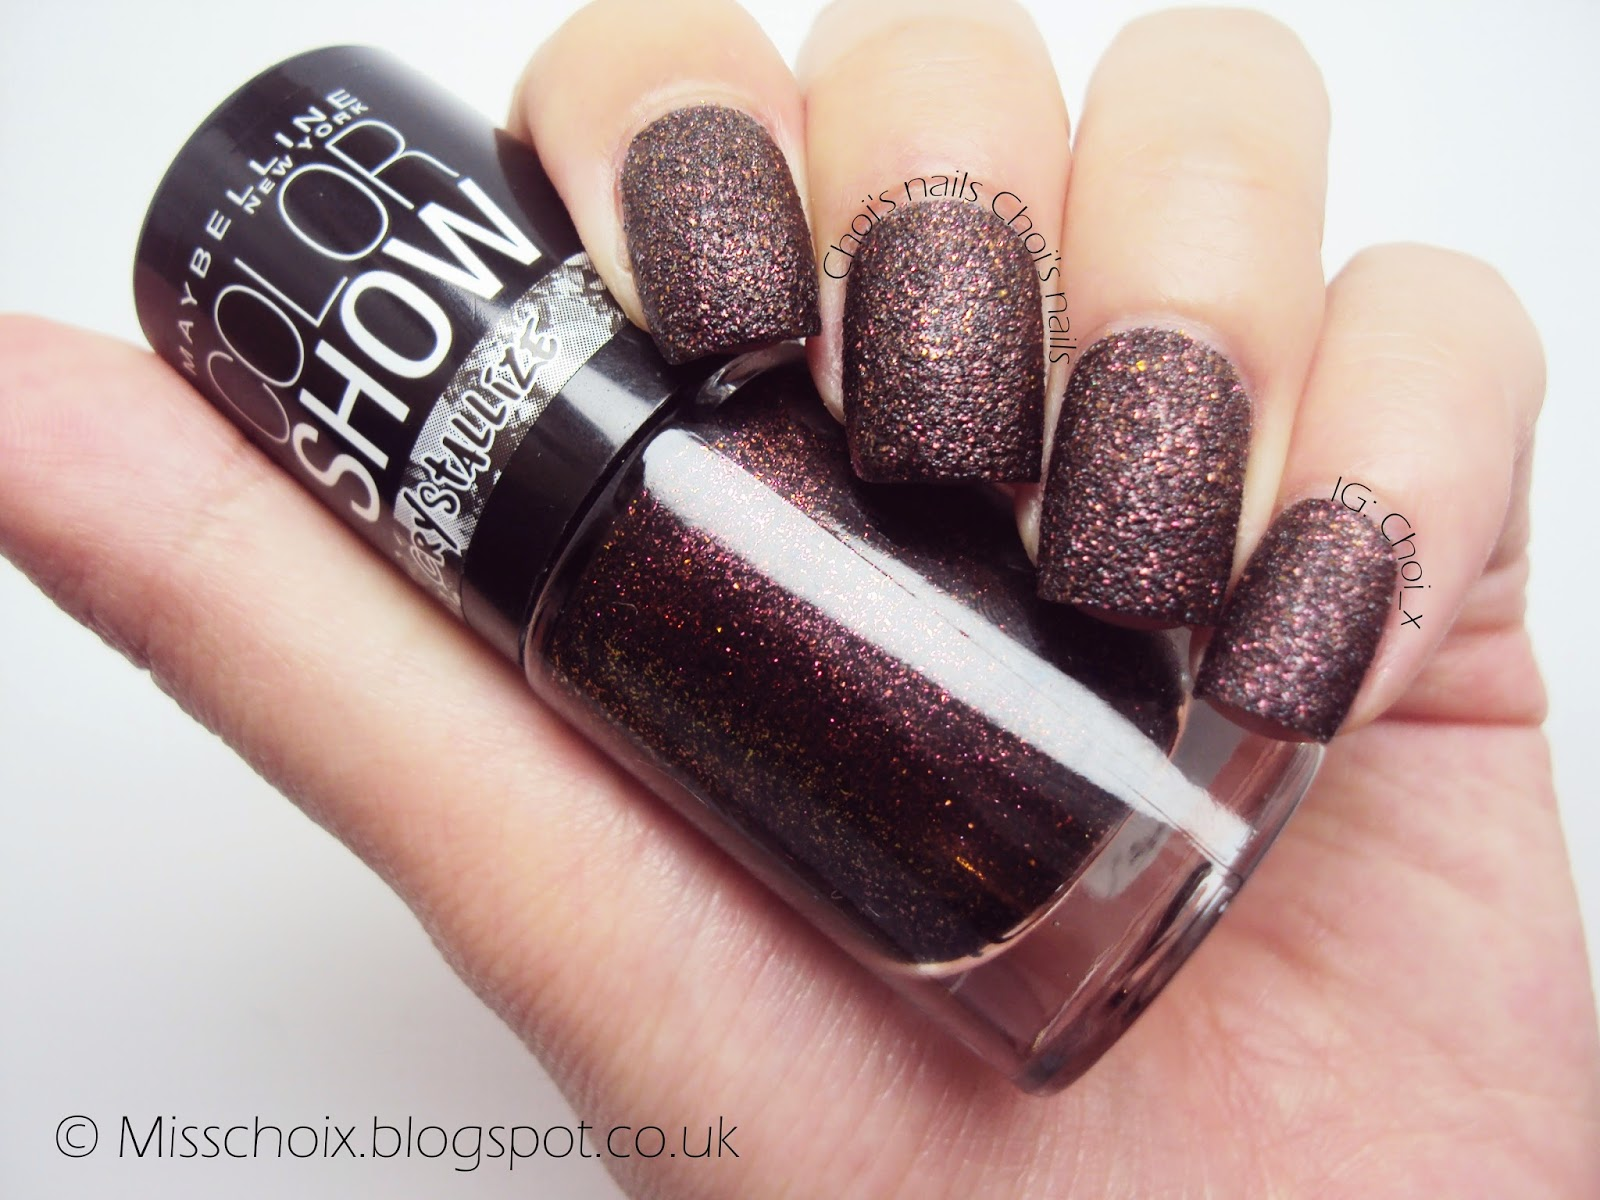 Maybelline color show crystallize in Red excess - Choi\'s nails